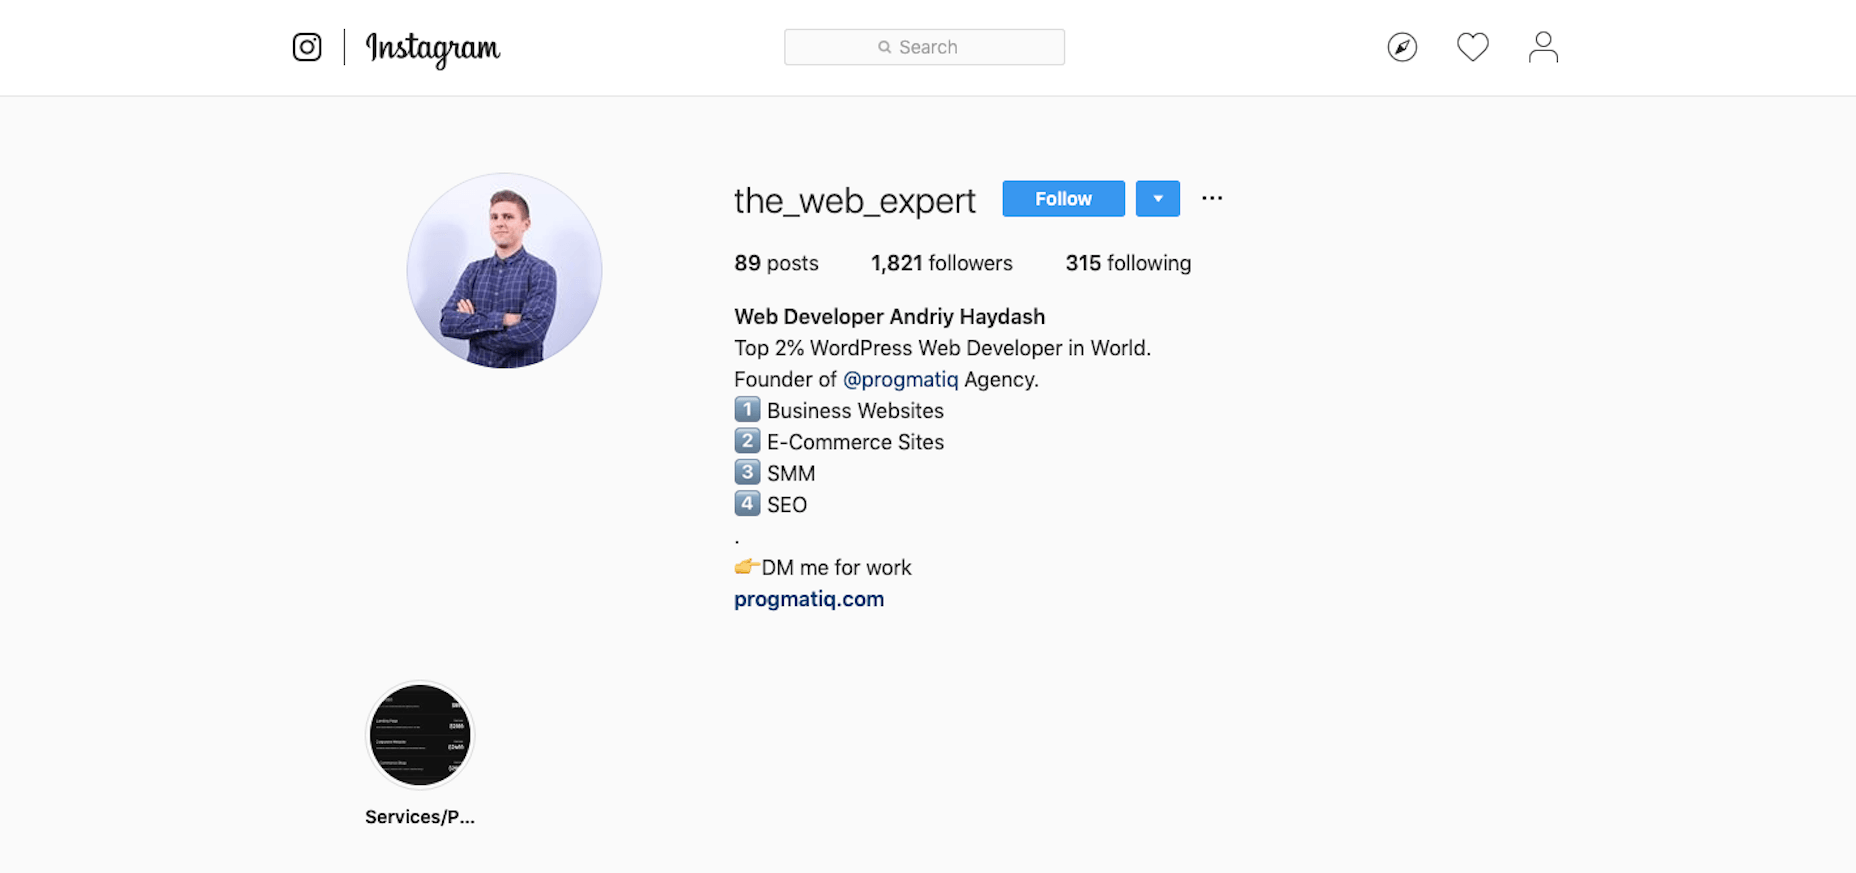 The Web Expert Profile